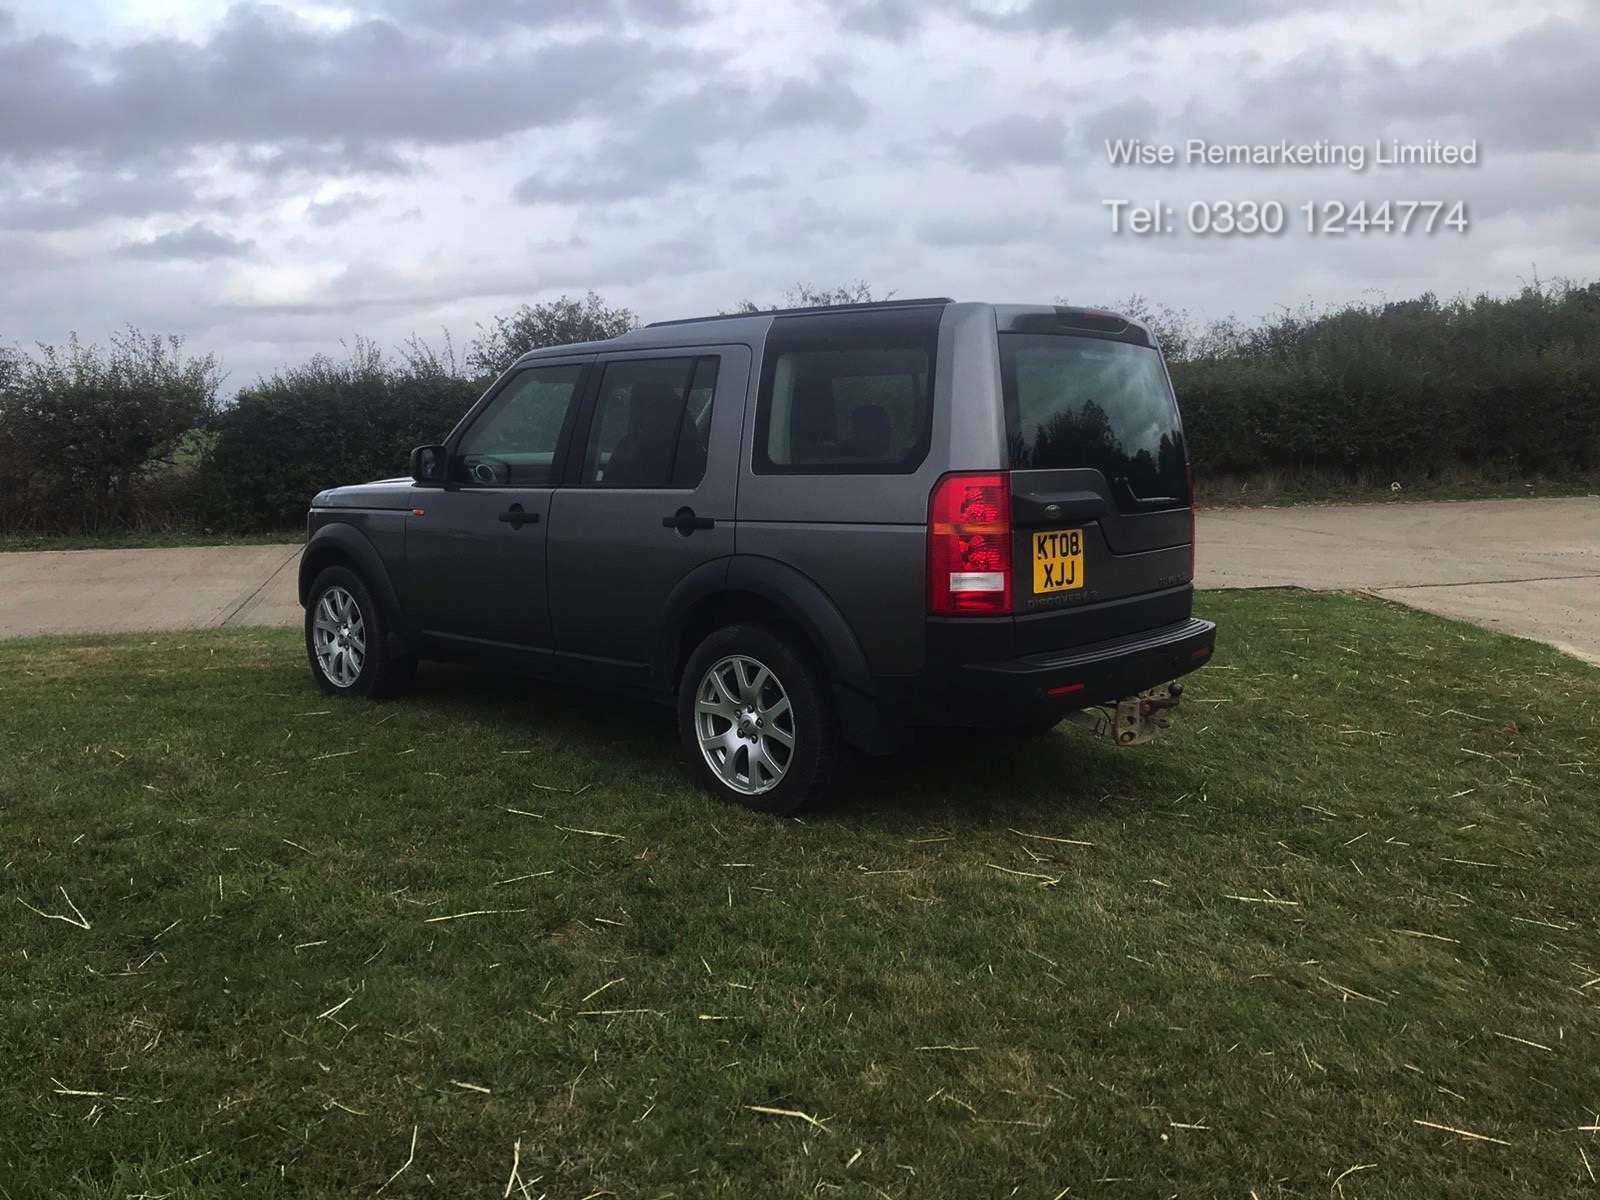 Lot 31 - Land Rover Discovery 2.7 TD V6 Special Equipment - Auto - 2008 08 Reg - Service History - 4x4